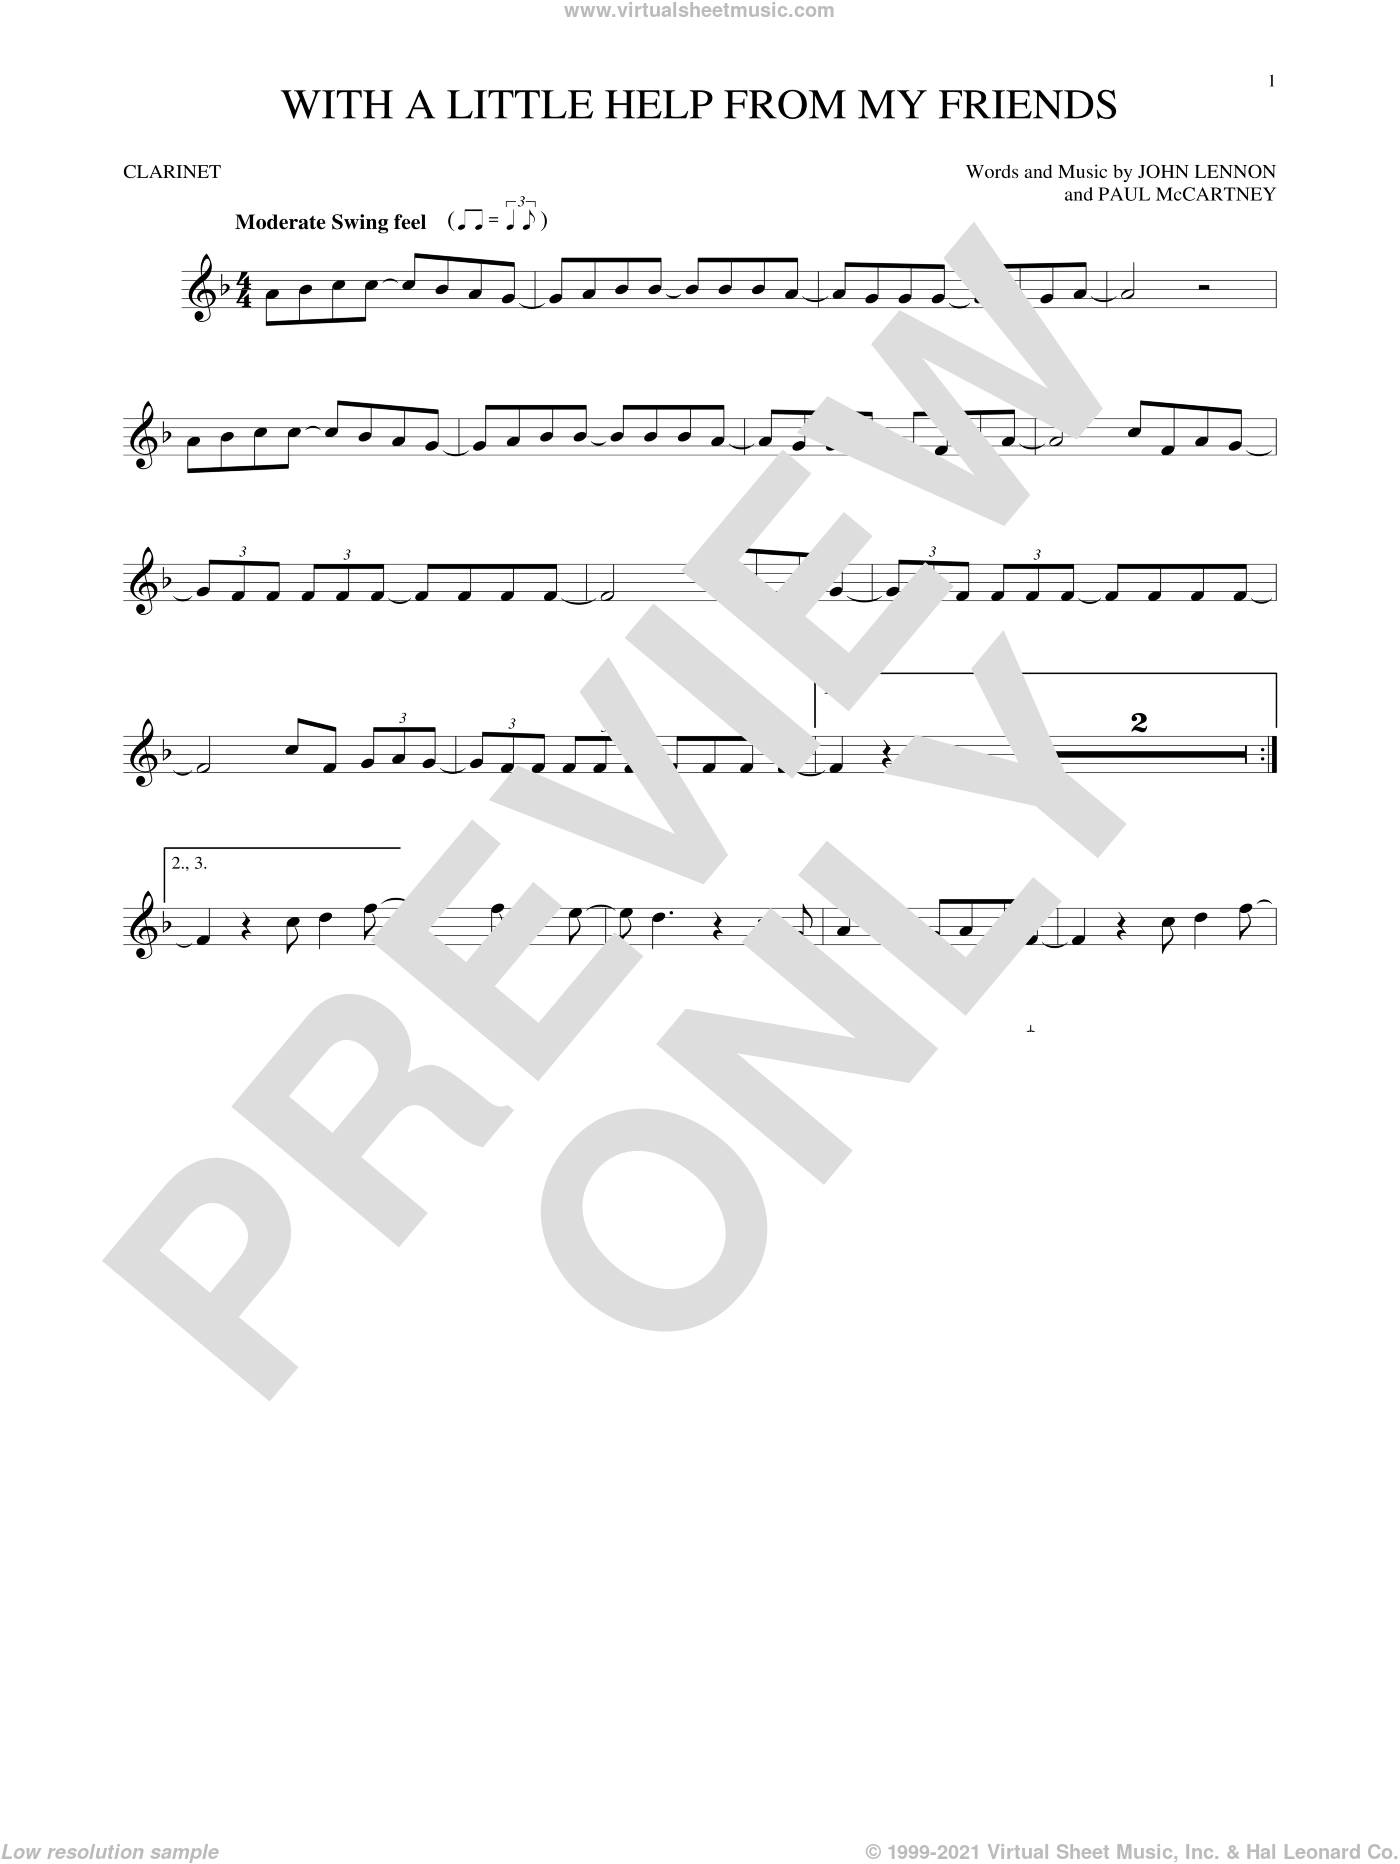 With A Little Help From My Friends sheet music for clarinet solo by The Beatles, Joe Cocker, John Lennon and Paul McCartney, intermediate skill level